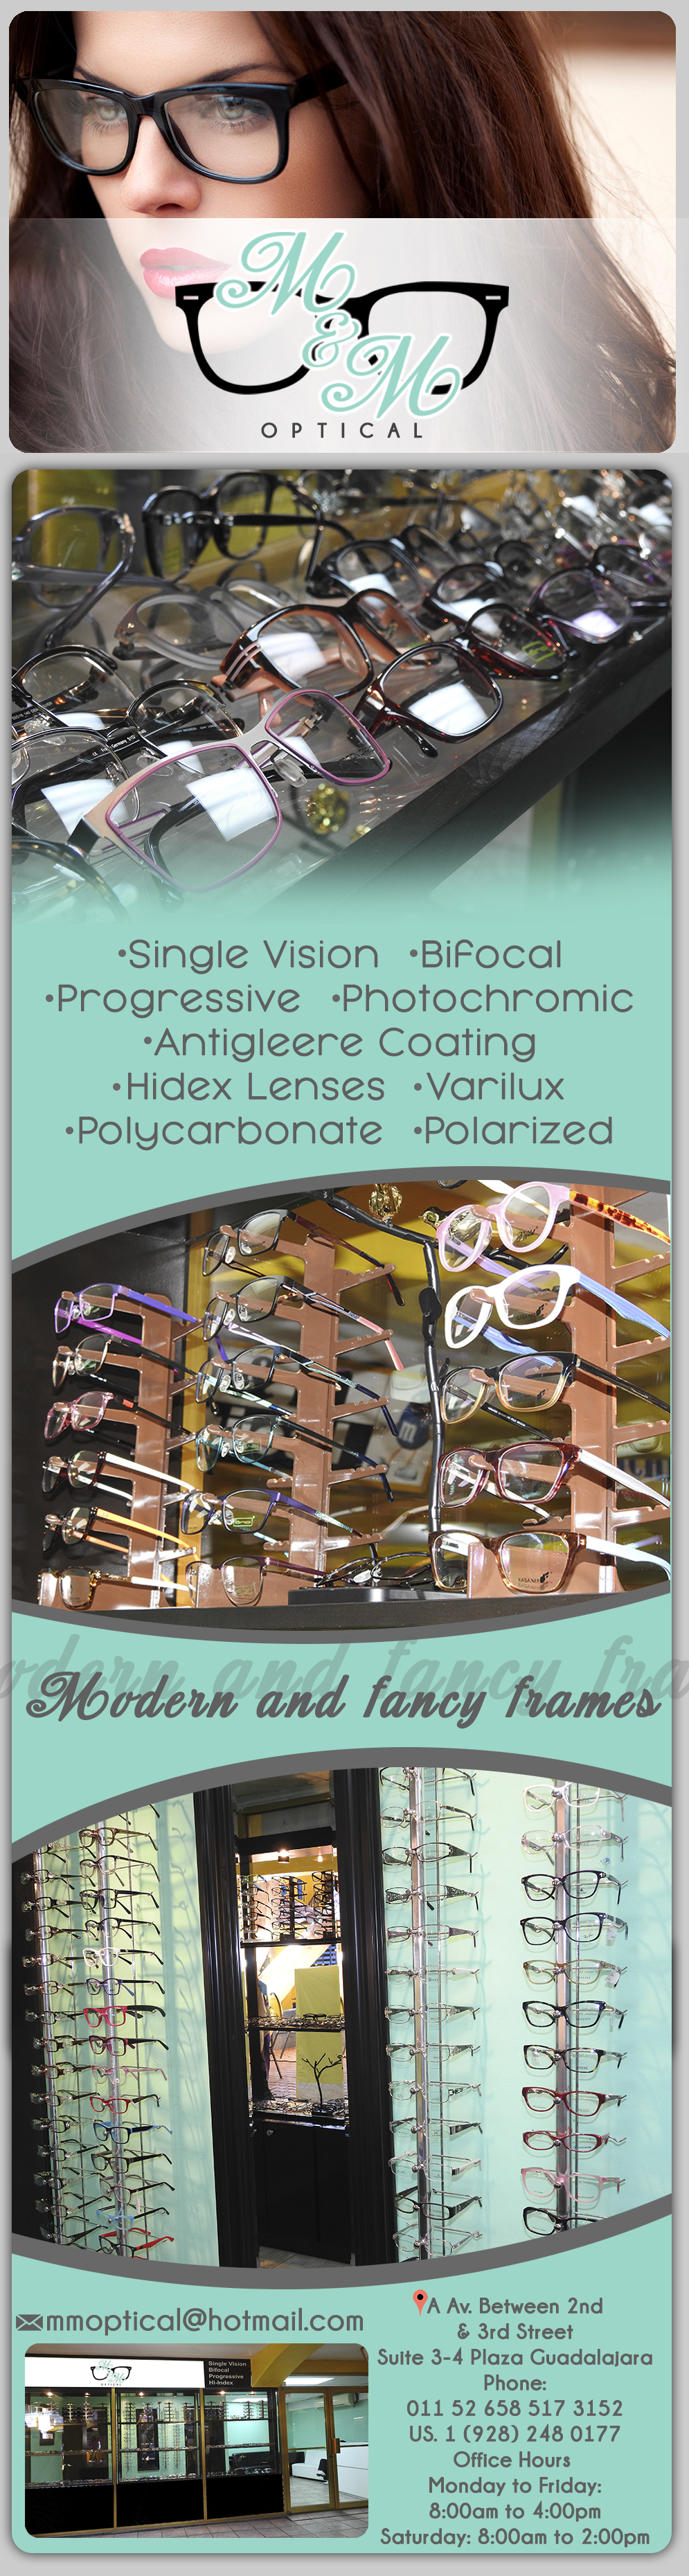 M & M Optical in Algodones  in Algodones  Single Vision, Bifocal, Progressive, Photochromic, Antigleere coating, Hi-index Lenses, Varilux, Polycarbonate, Polarized. MODERN AND FANCY FRAMES.         Single Vision Bifocal Progressive Photochromic Antigleere coating Hi-index Lenses Varilux Polycarbonate Polarized optical services lenses  MODERN AND FANCY FRAMES        óptica lentes